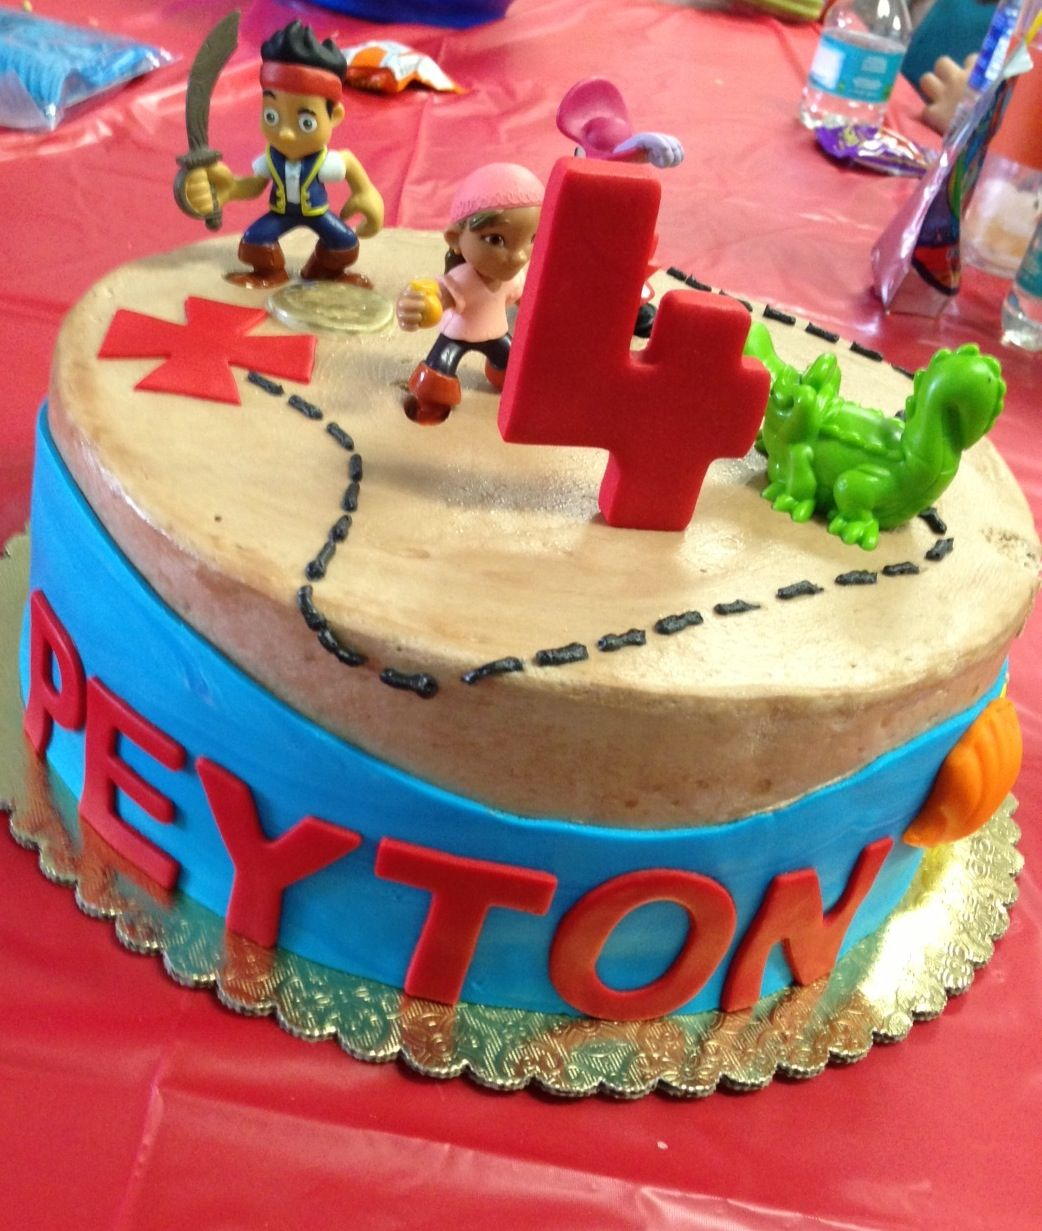 Pin by Willa Armstrong on For the kids | Pirate birthday ...